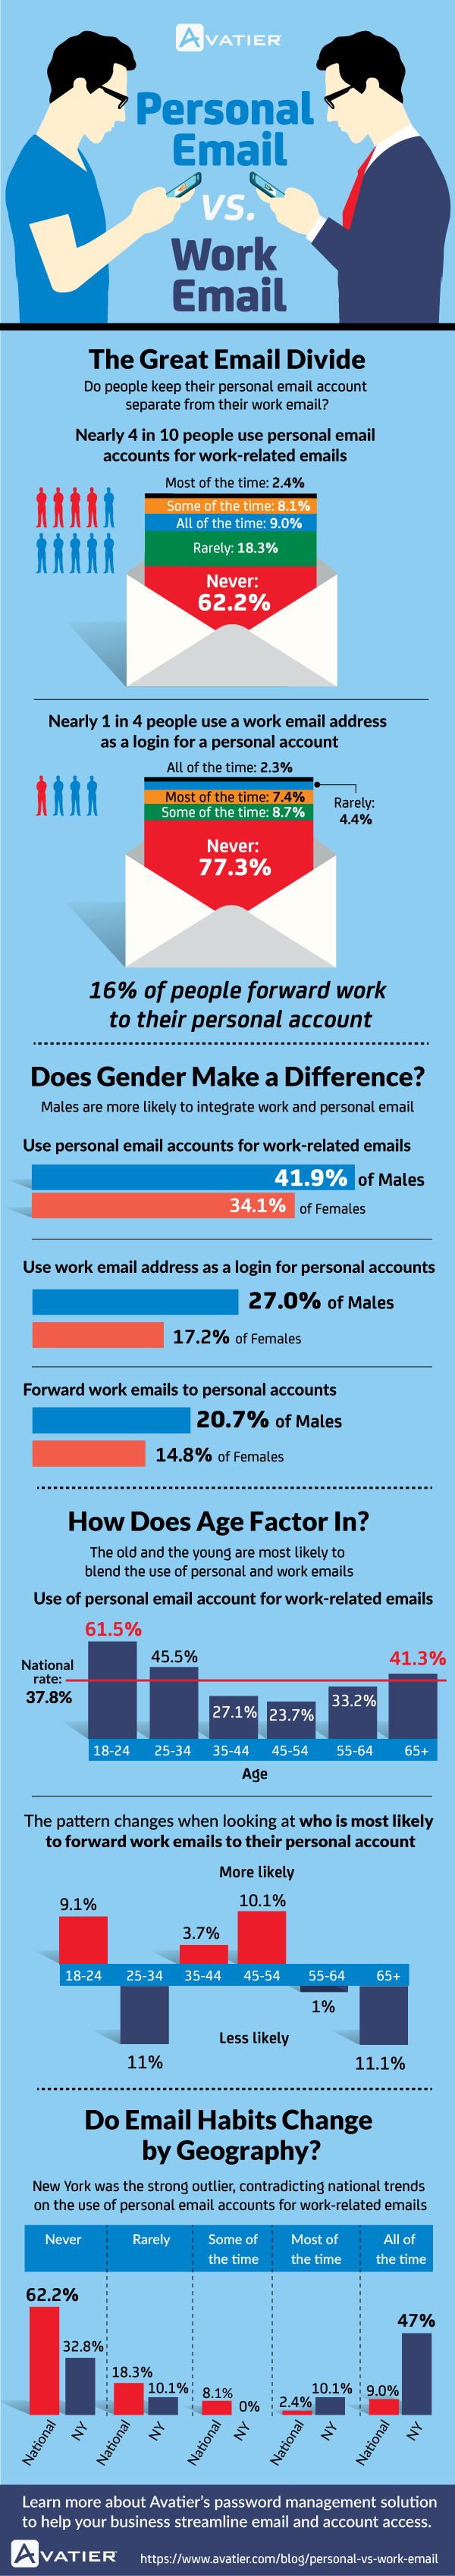 Personal Email vs. Work Email